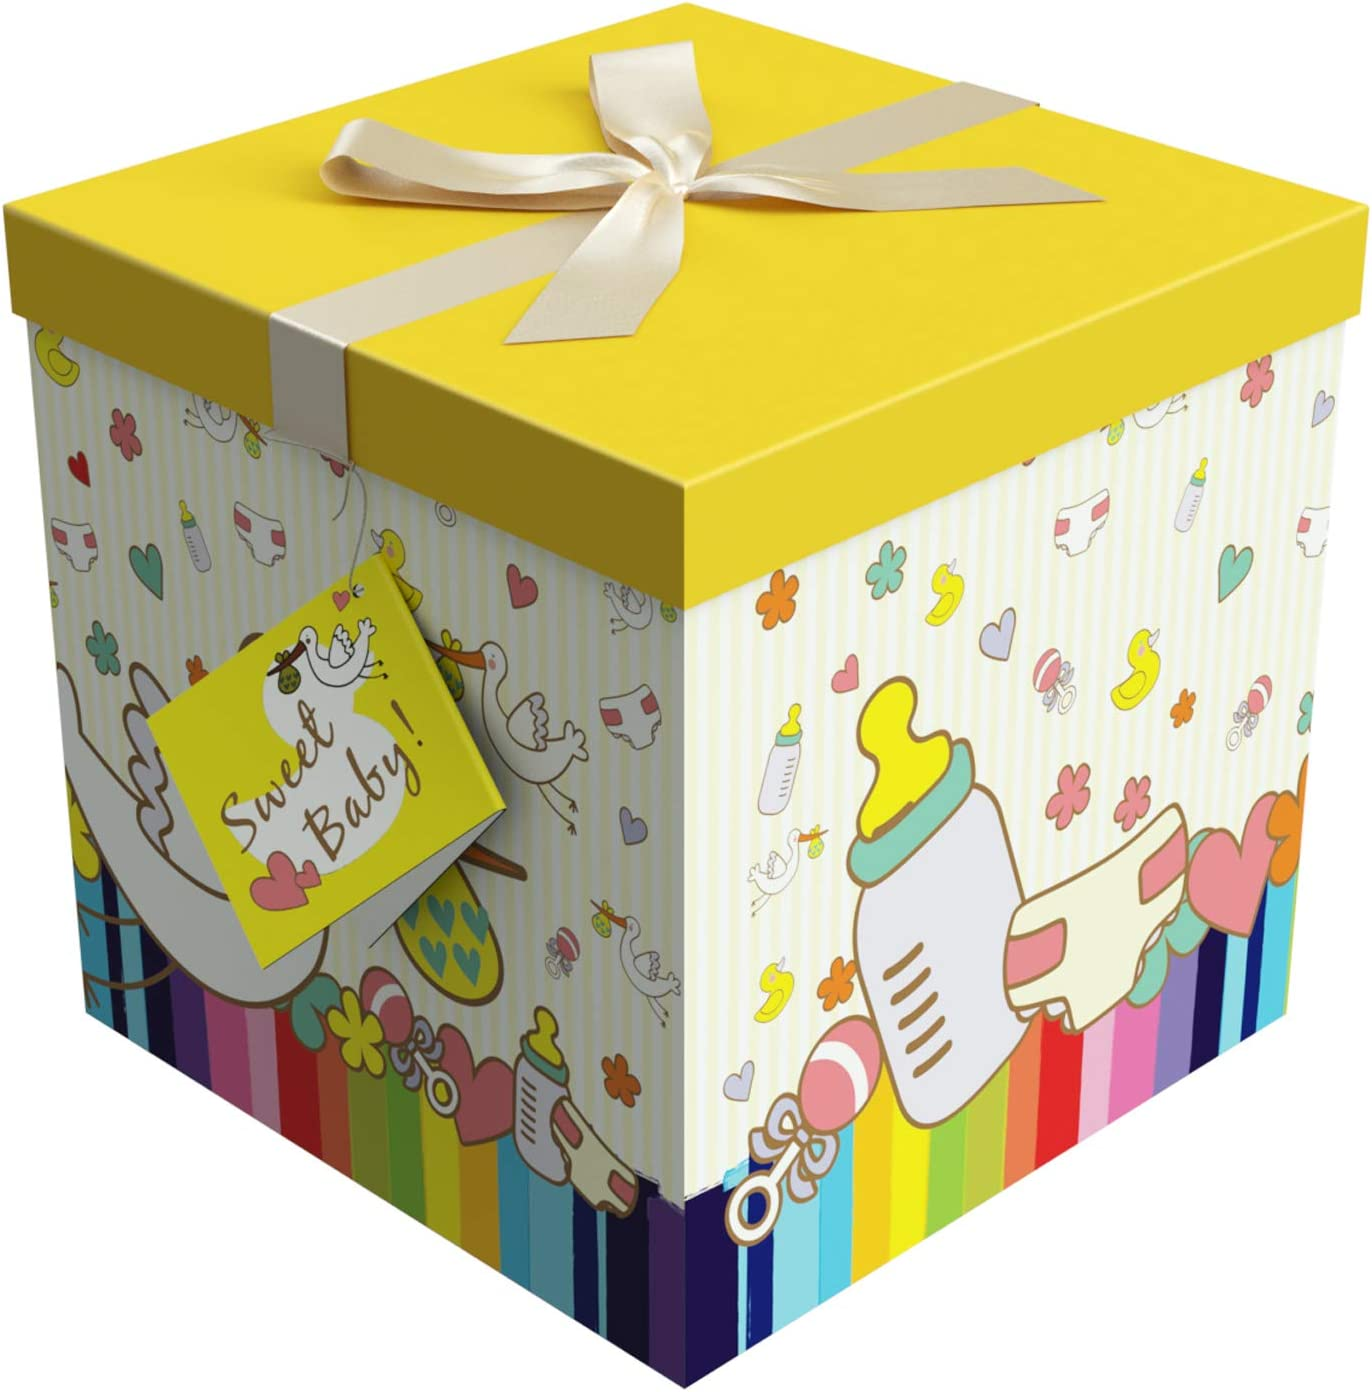 Gift Box 9x9x9 Petit Bebe Collection - Easy to Assemble & Reusable - No Glue Required - Ribbon, Tissue Paper, and Gift Tag Included - EZ Gift Box by Endless Art US